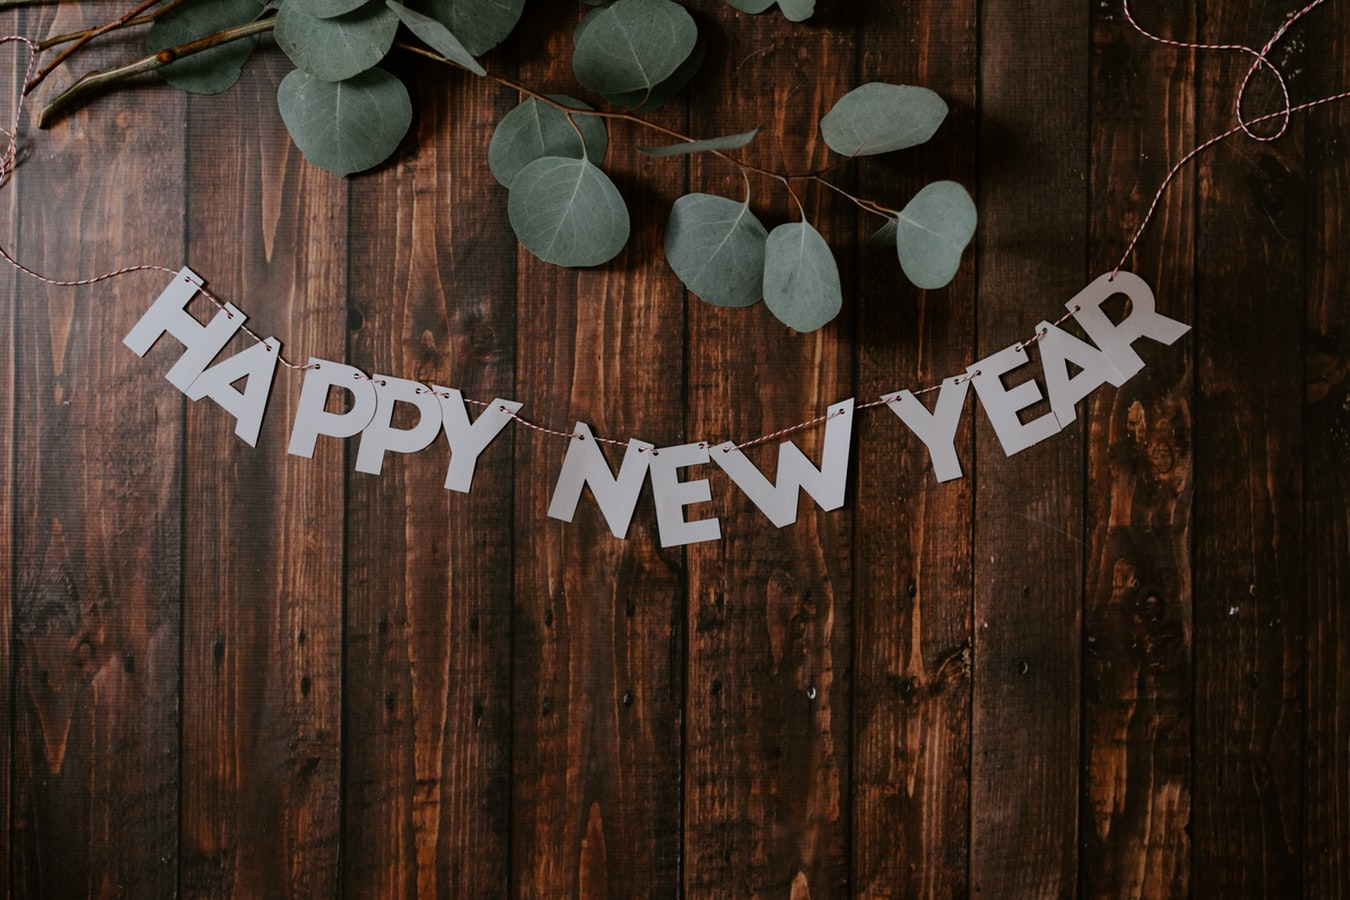 The words 'Happy New Year' are hung in a silver banner across a dark wooden table with a bit of greenery above